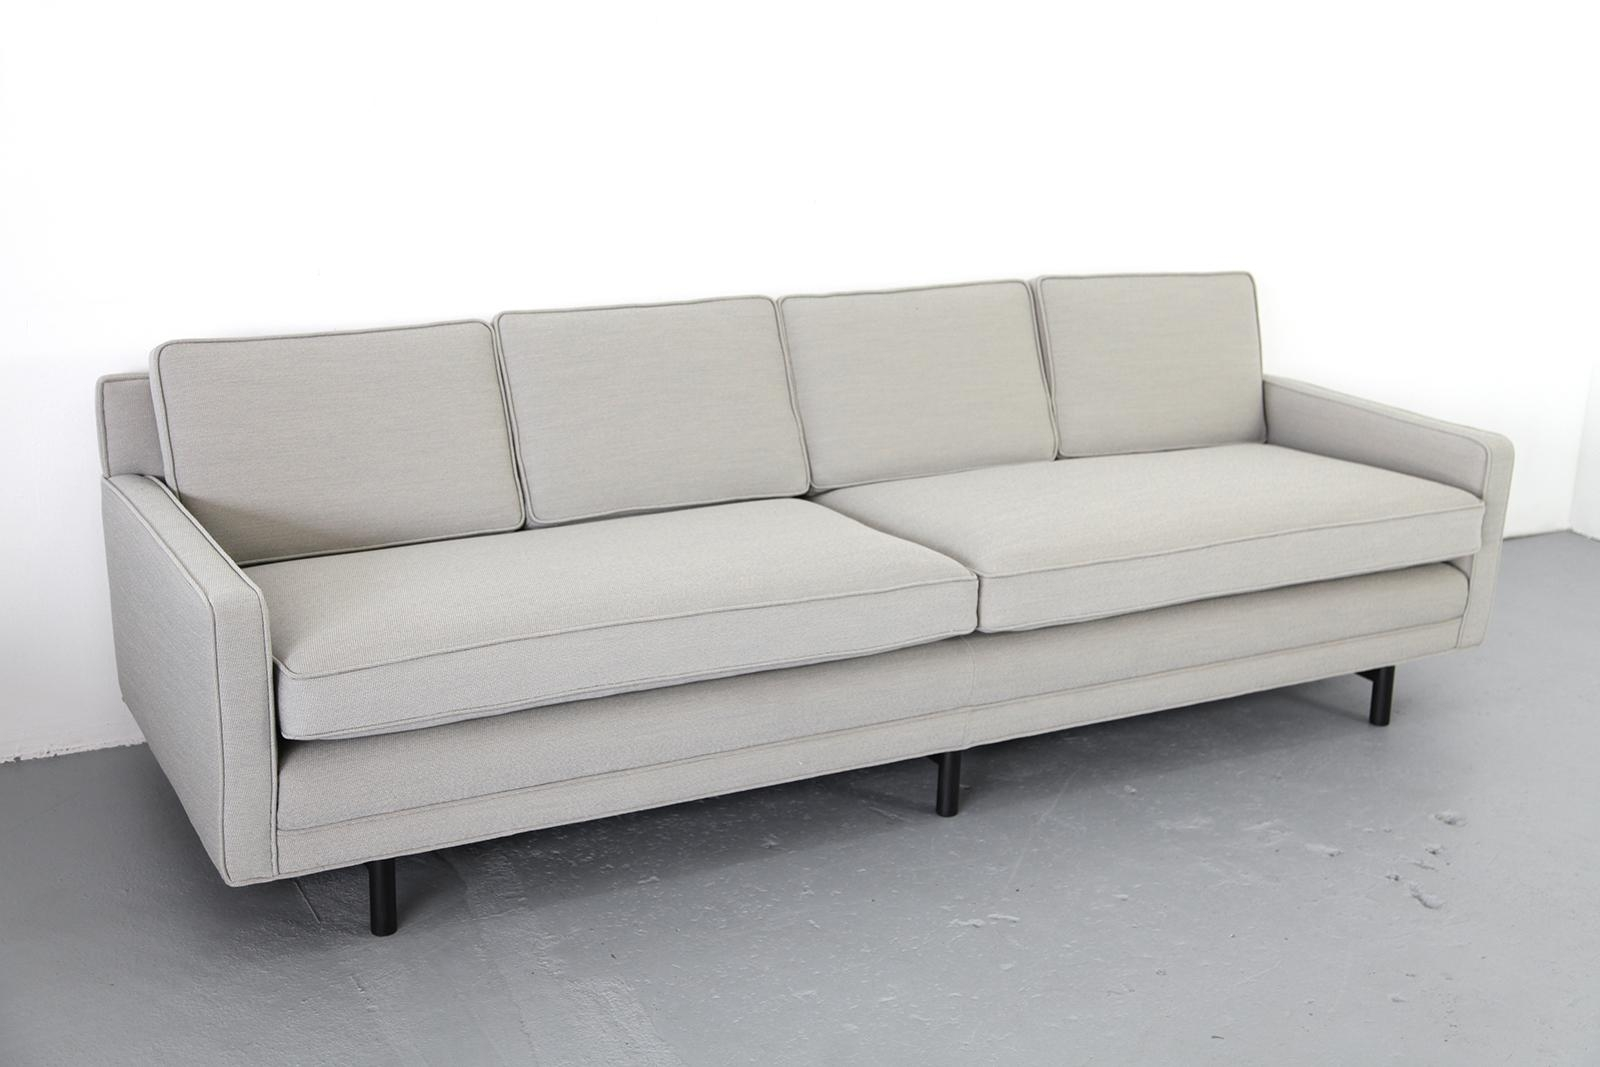 4-Seater Sofapaul Mccobb For Directional For Sale At Pamono inside 4 Seat Sofas